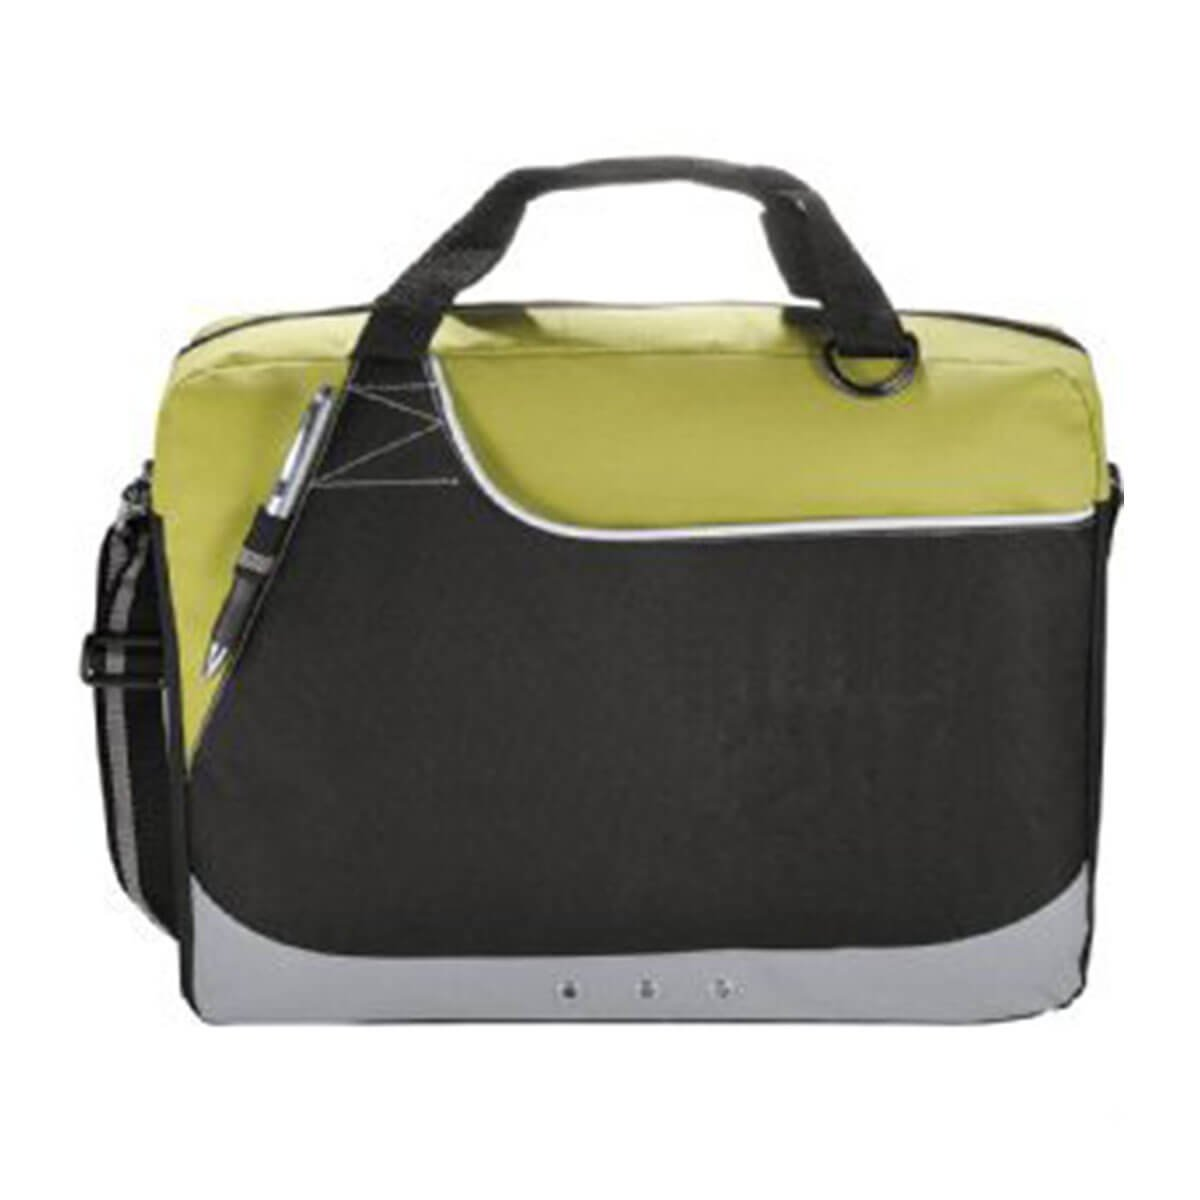 Rubble Brief Bag-Green and Black with White Trim.